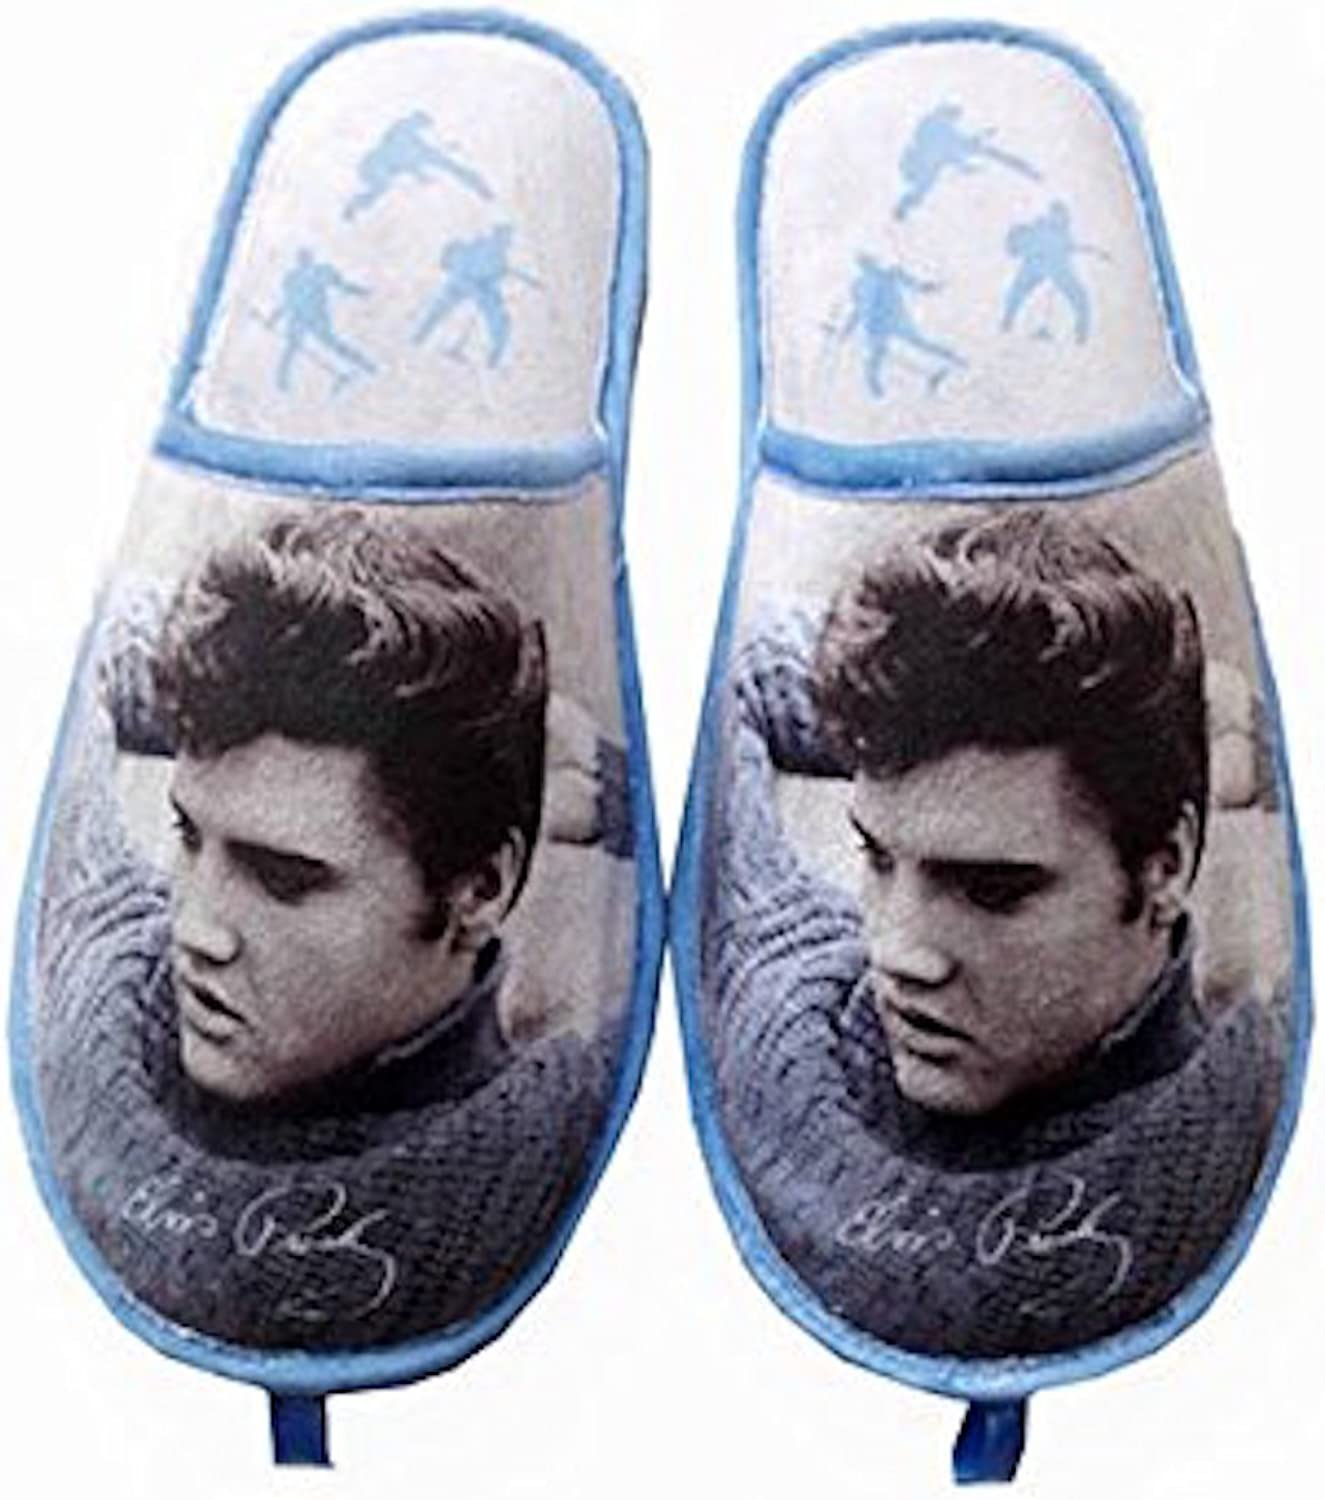 Midsouth Products Elvis Presley Slippers bluee Sweater - One Size Fits Most